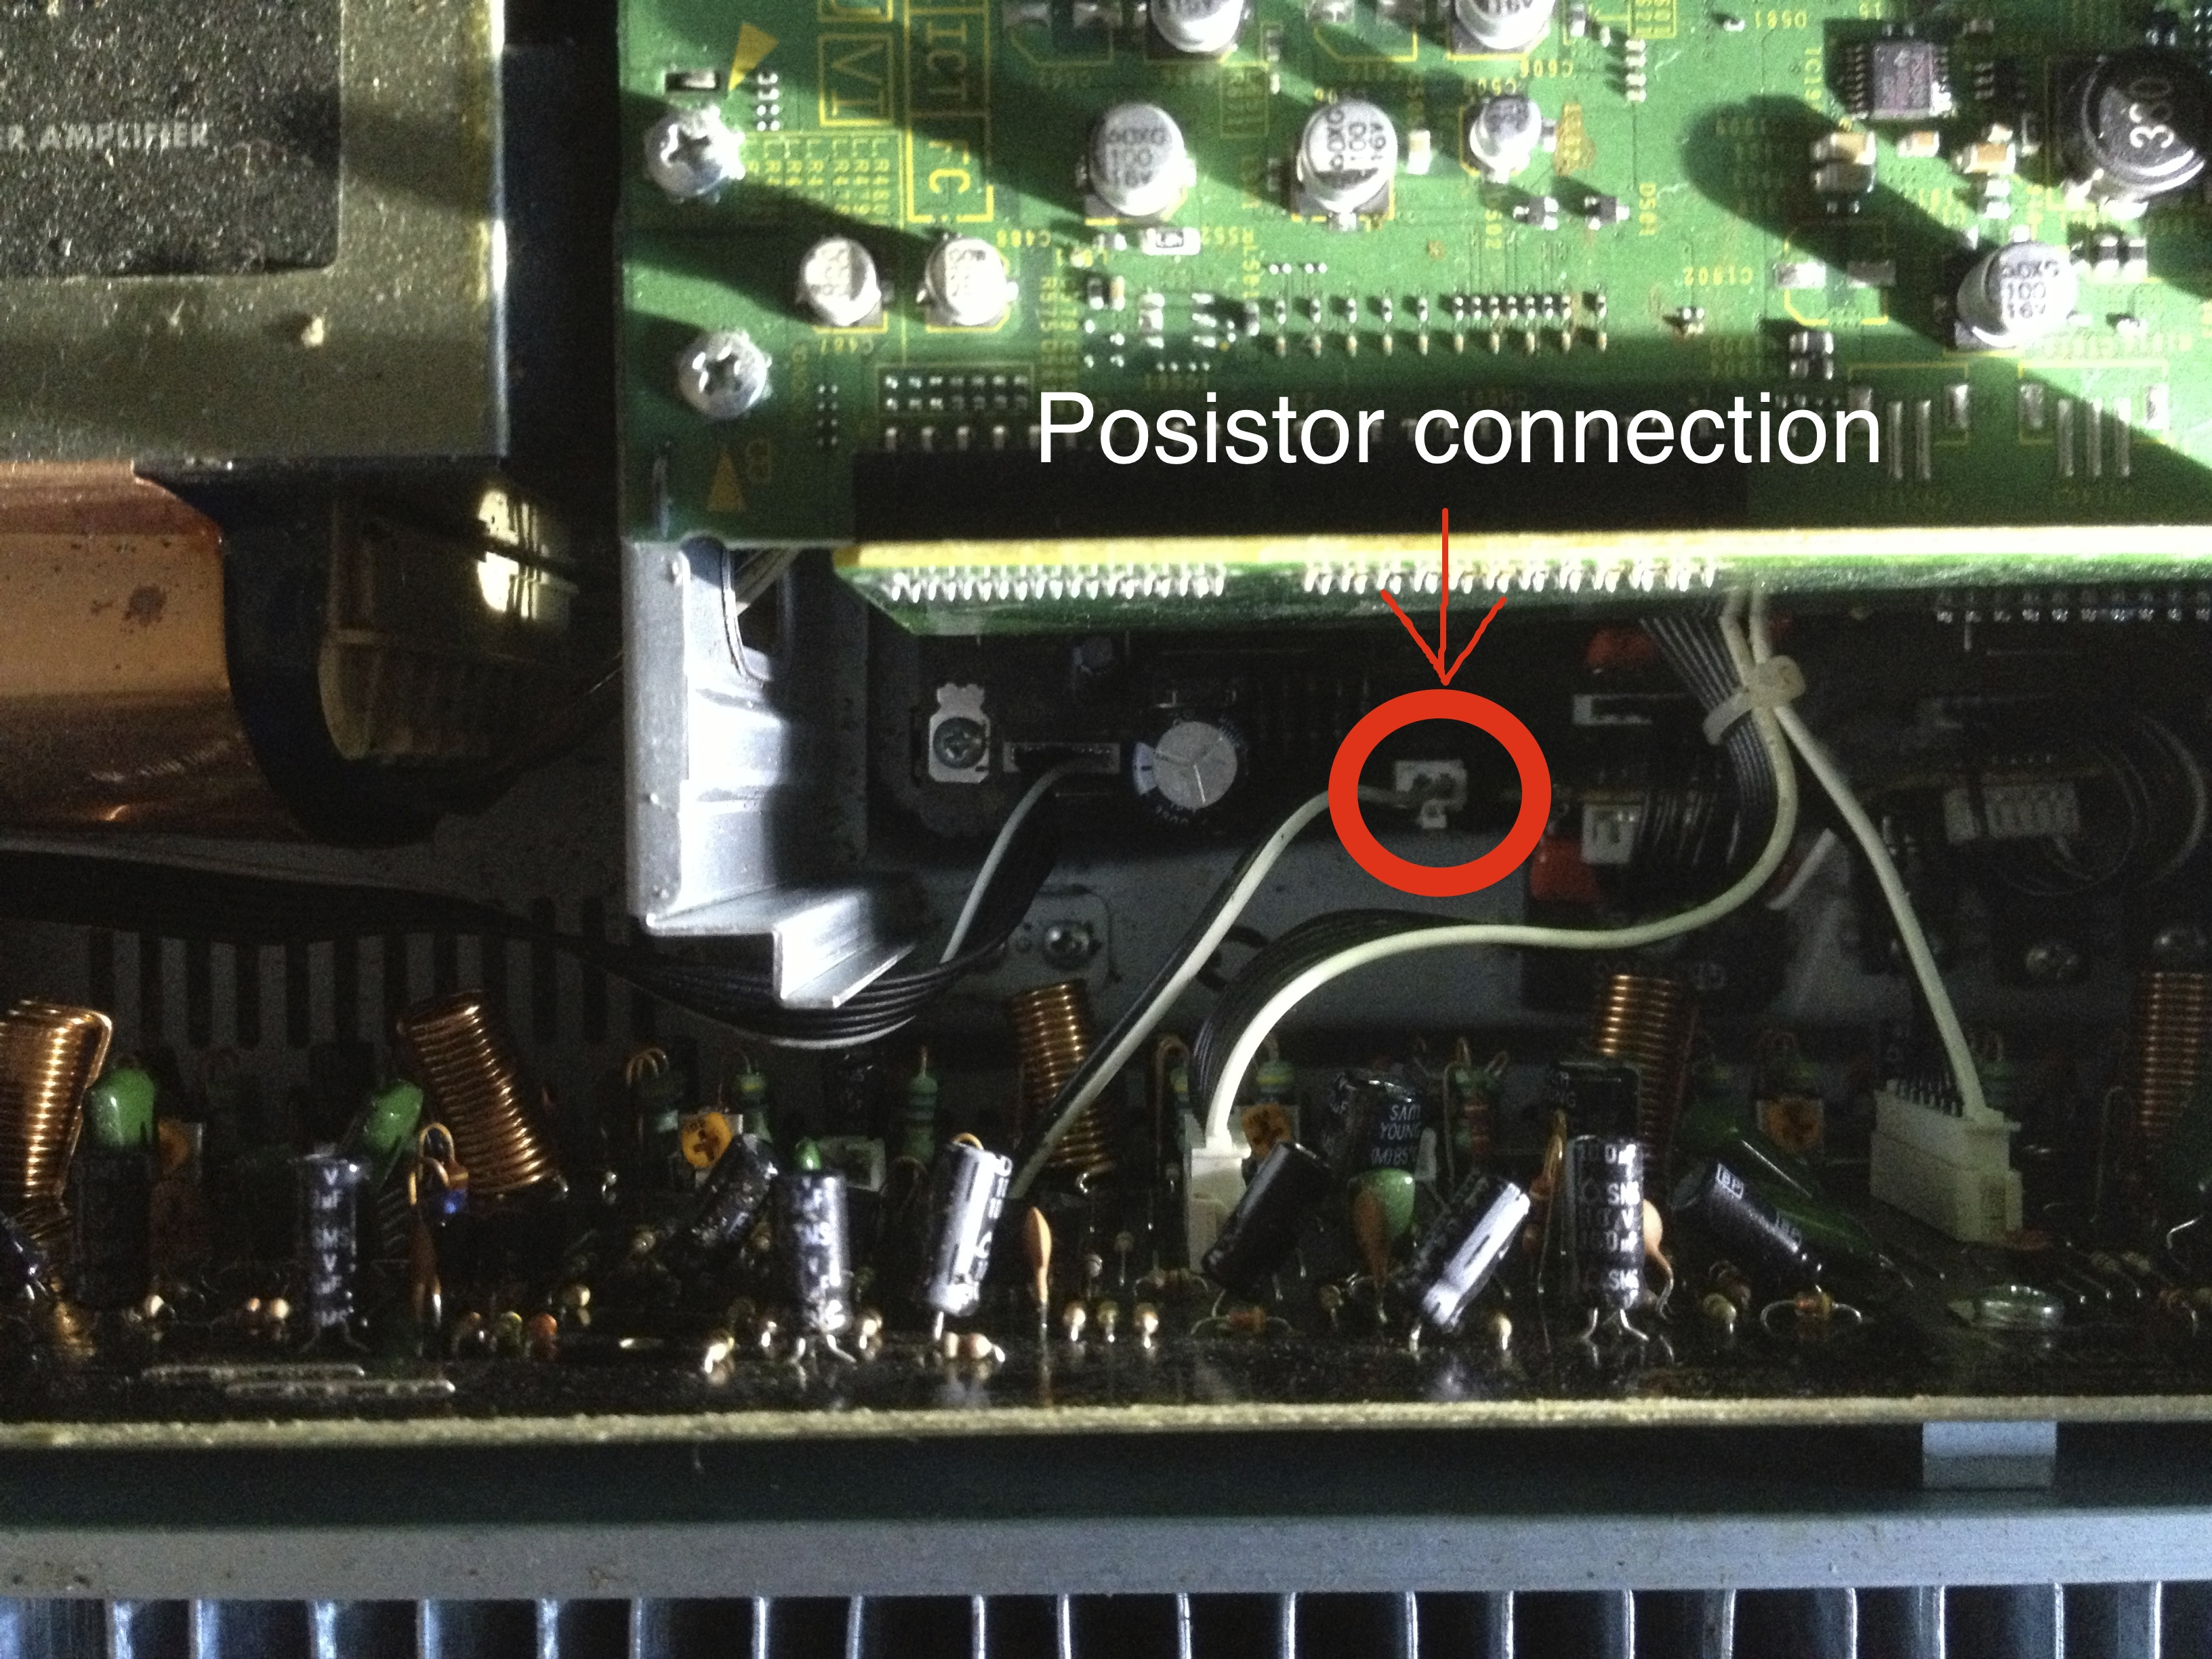 posistor connection